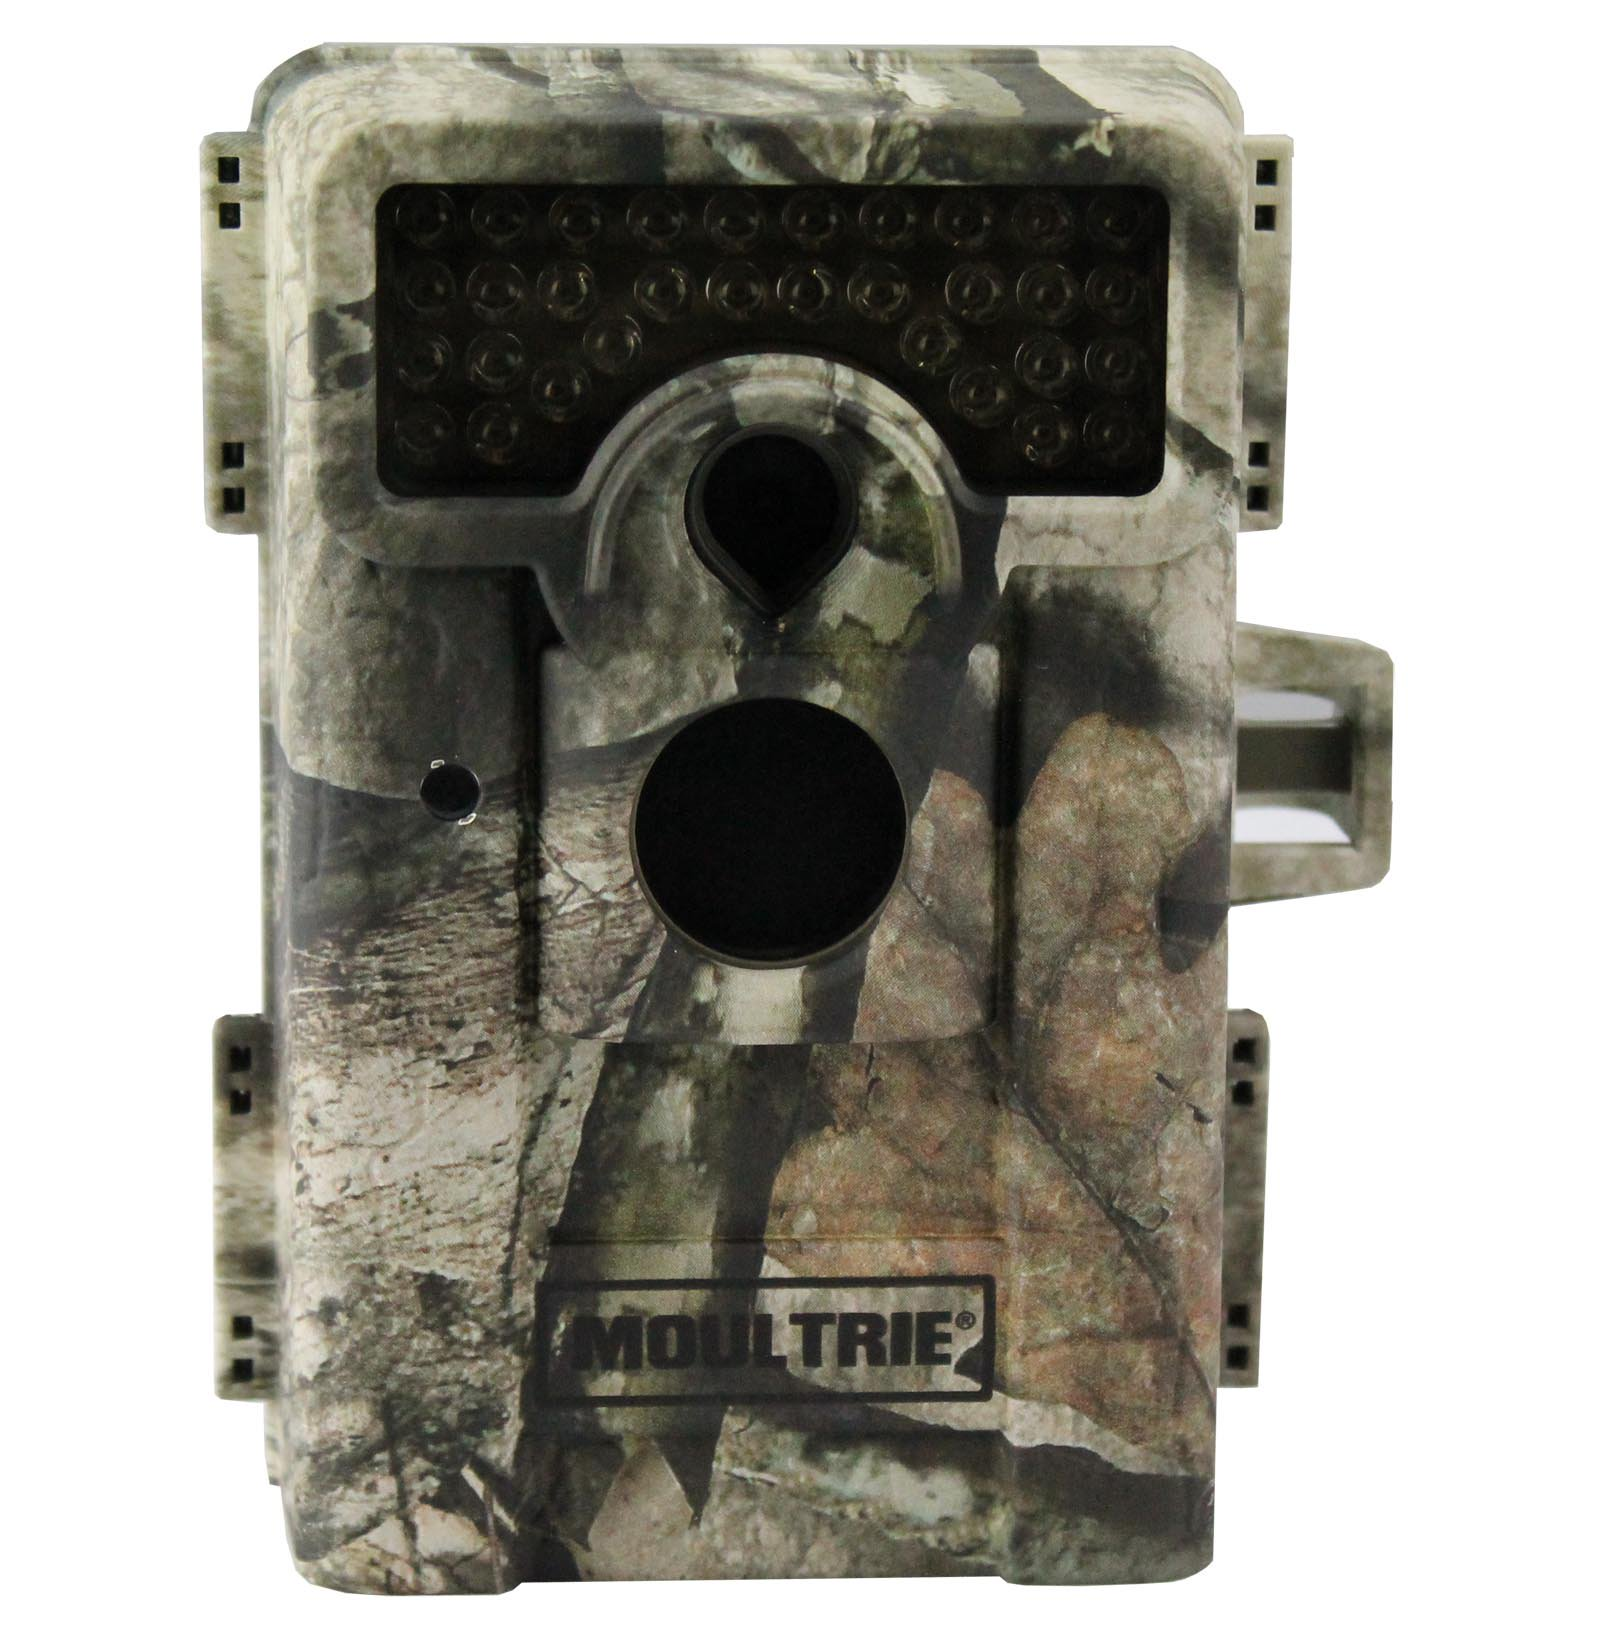 Moultrie Game Spy M-990i No Glow 10.0MP Game/Trail Camera